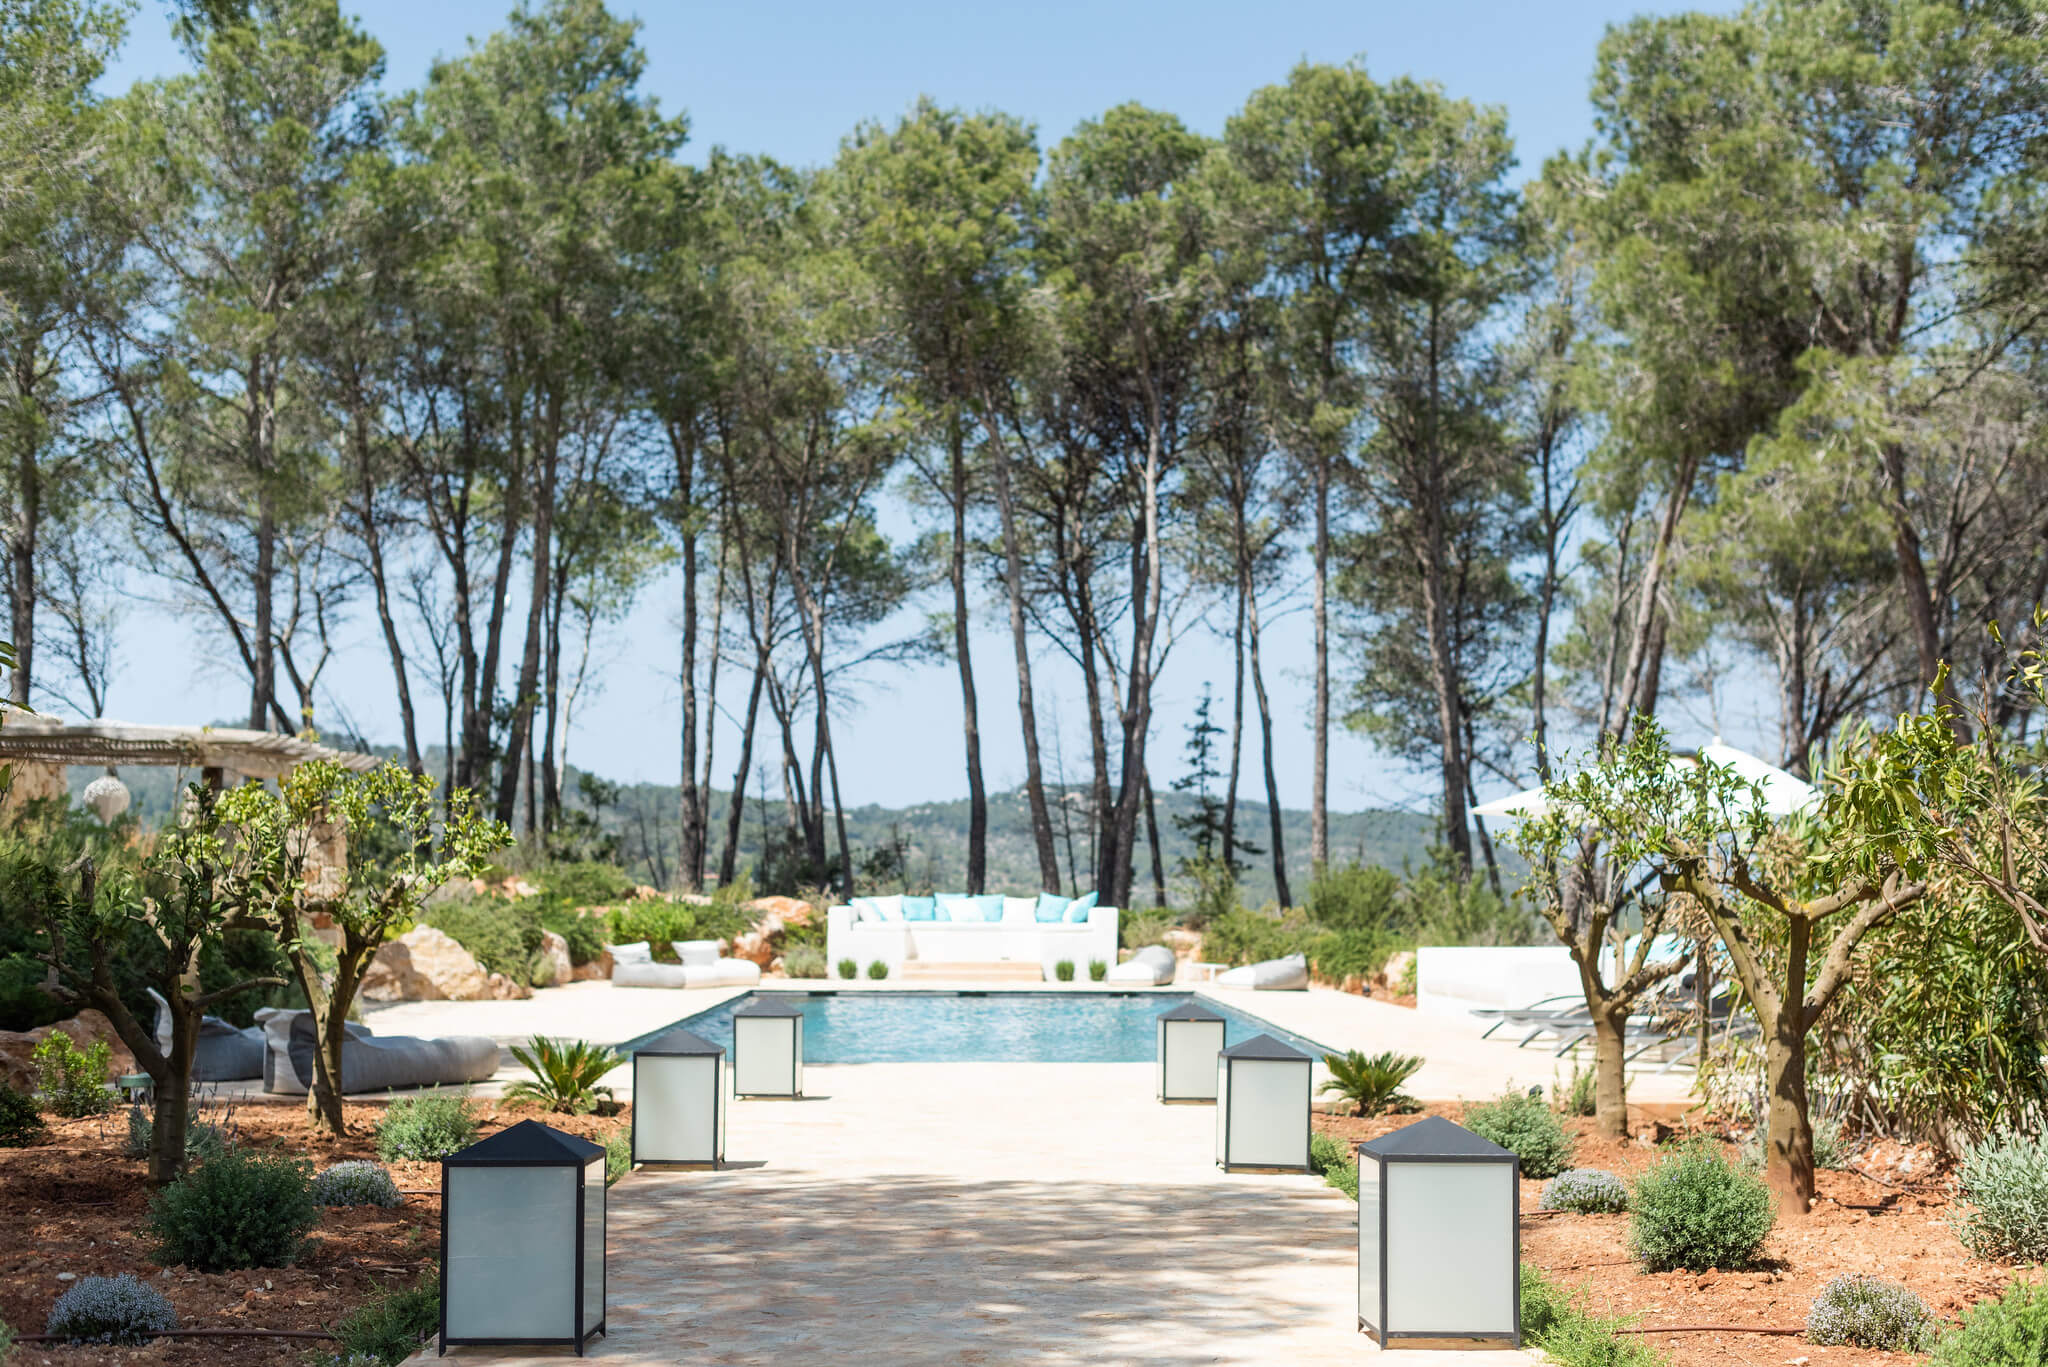 https://dev.white-ibiza.com/wp-content/uploads/2020/05/white-ibiza-villas-can-terra-surrounded-by-forest.jpg